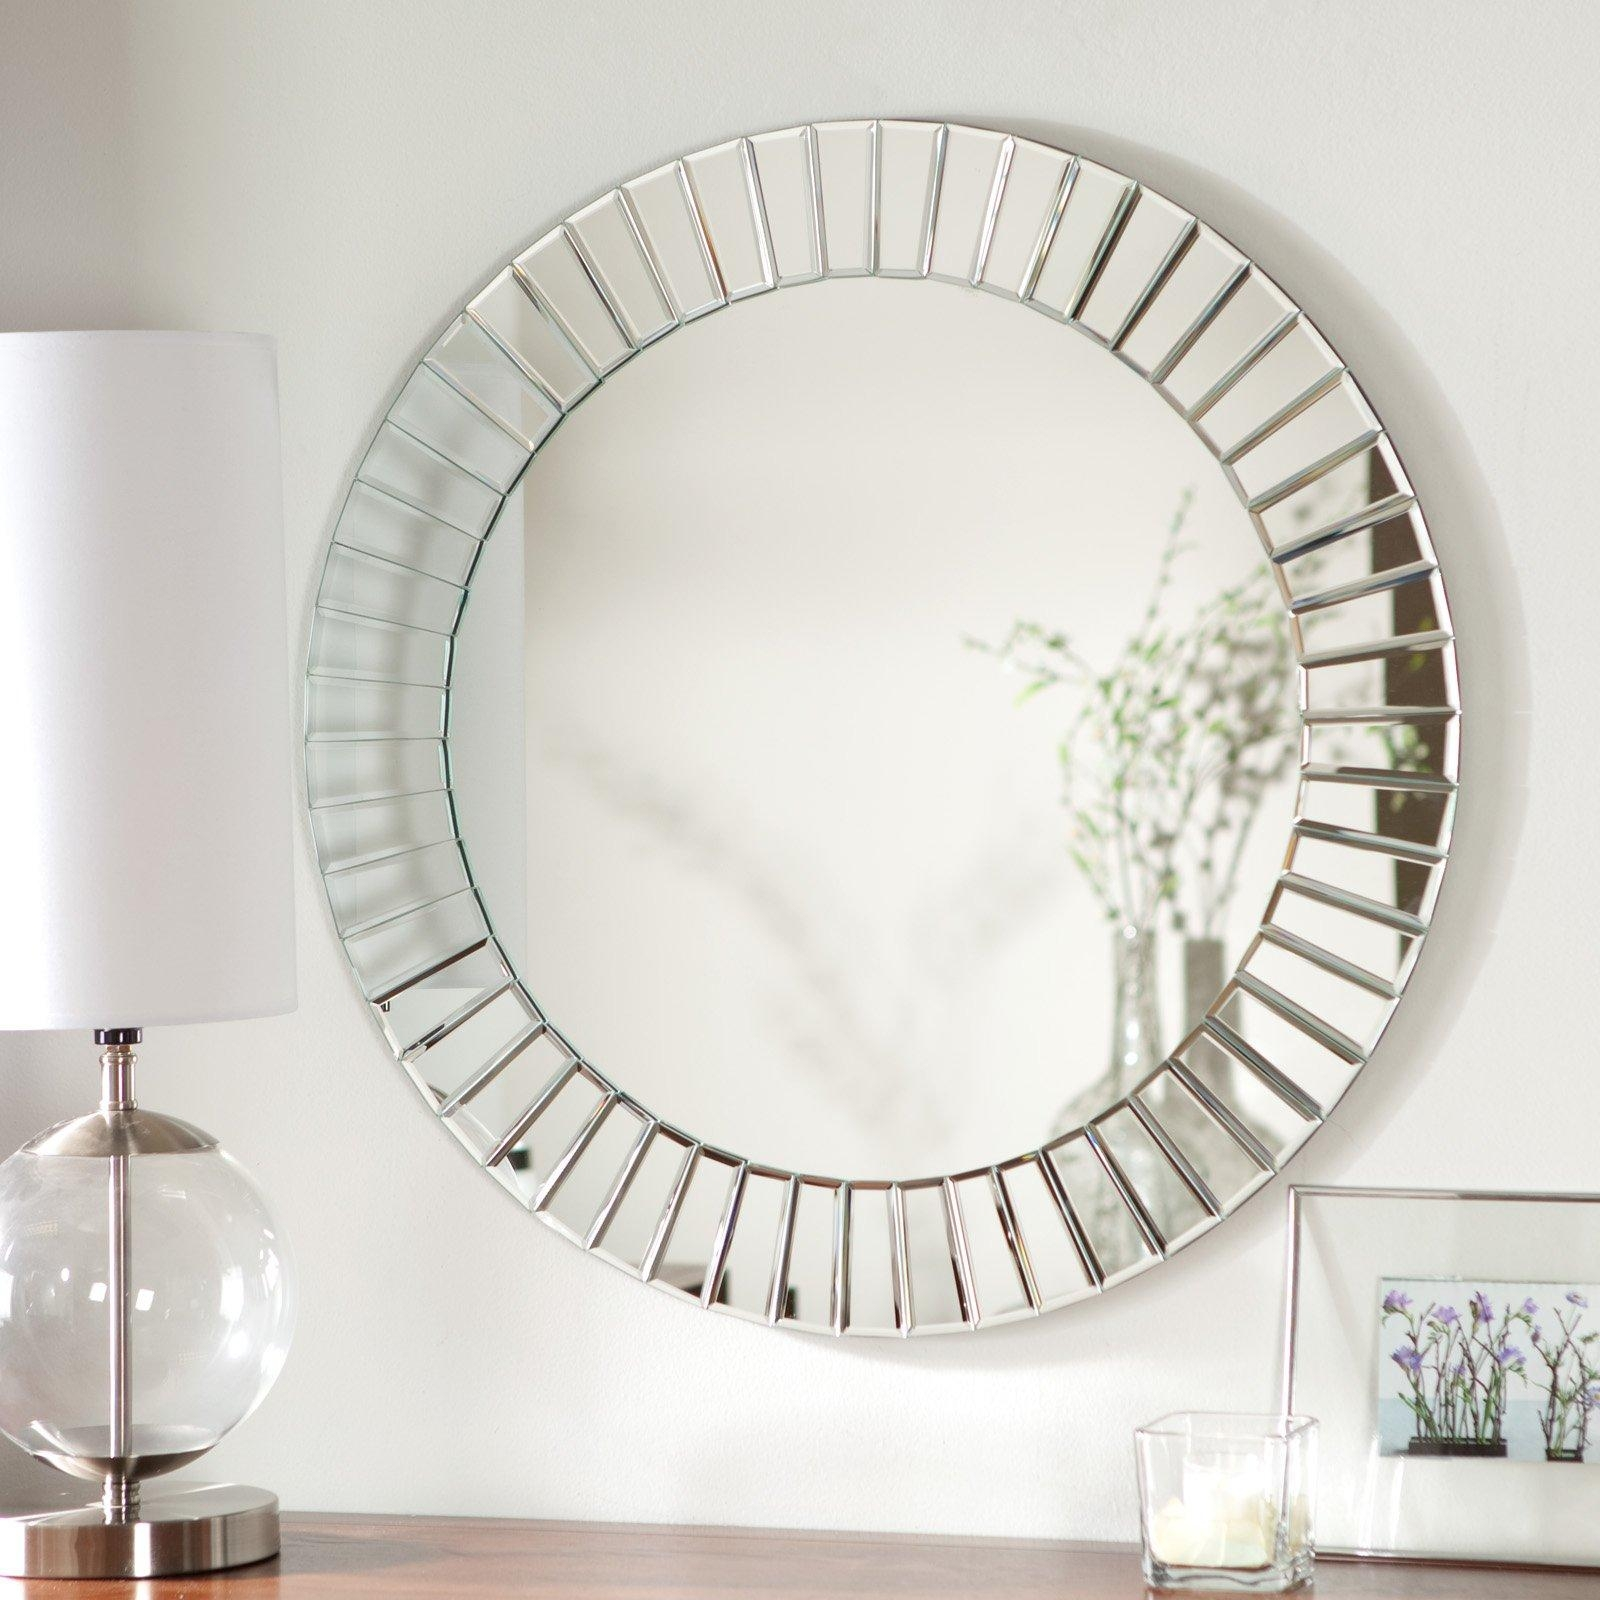 Bathroom: Light Up Your Home With Frameless Beveled Mirror Pertaining To Frameless Arched Mirror (Image 10 of 20)